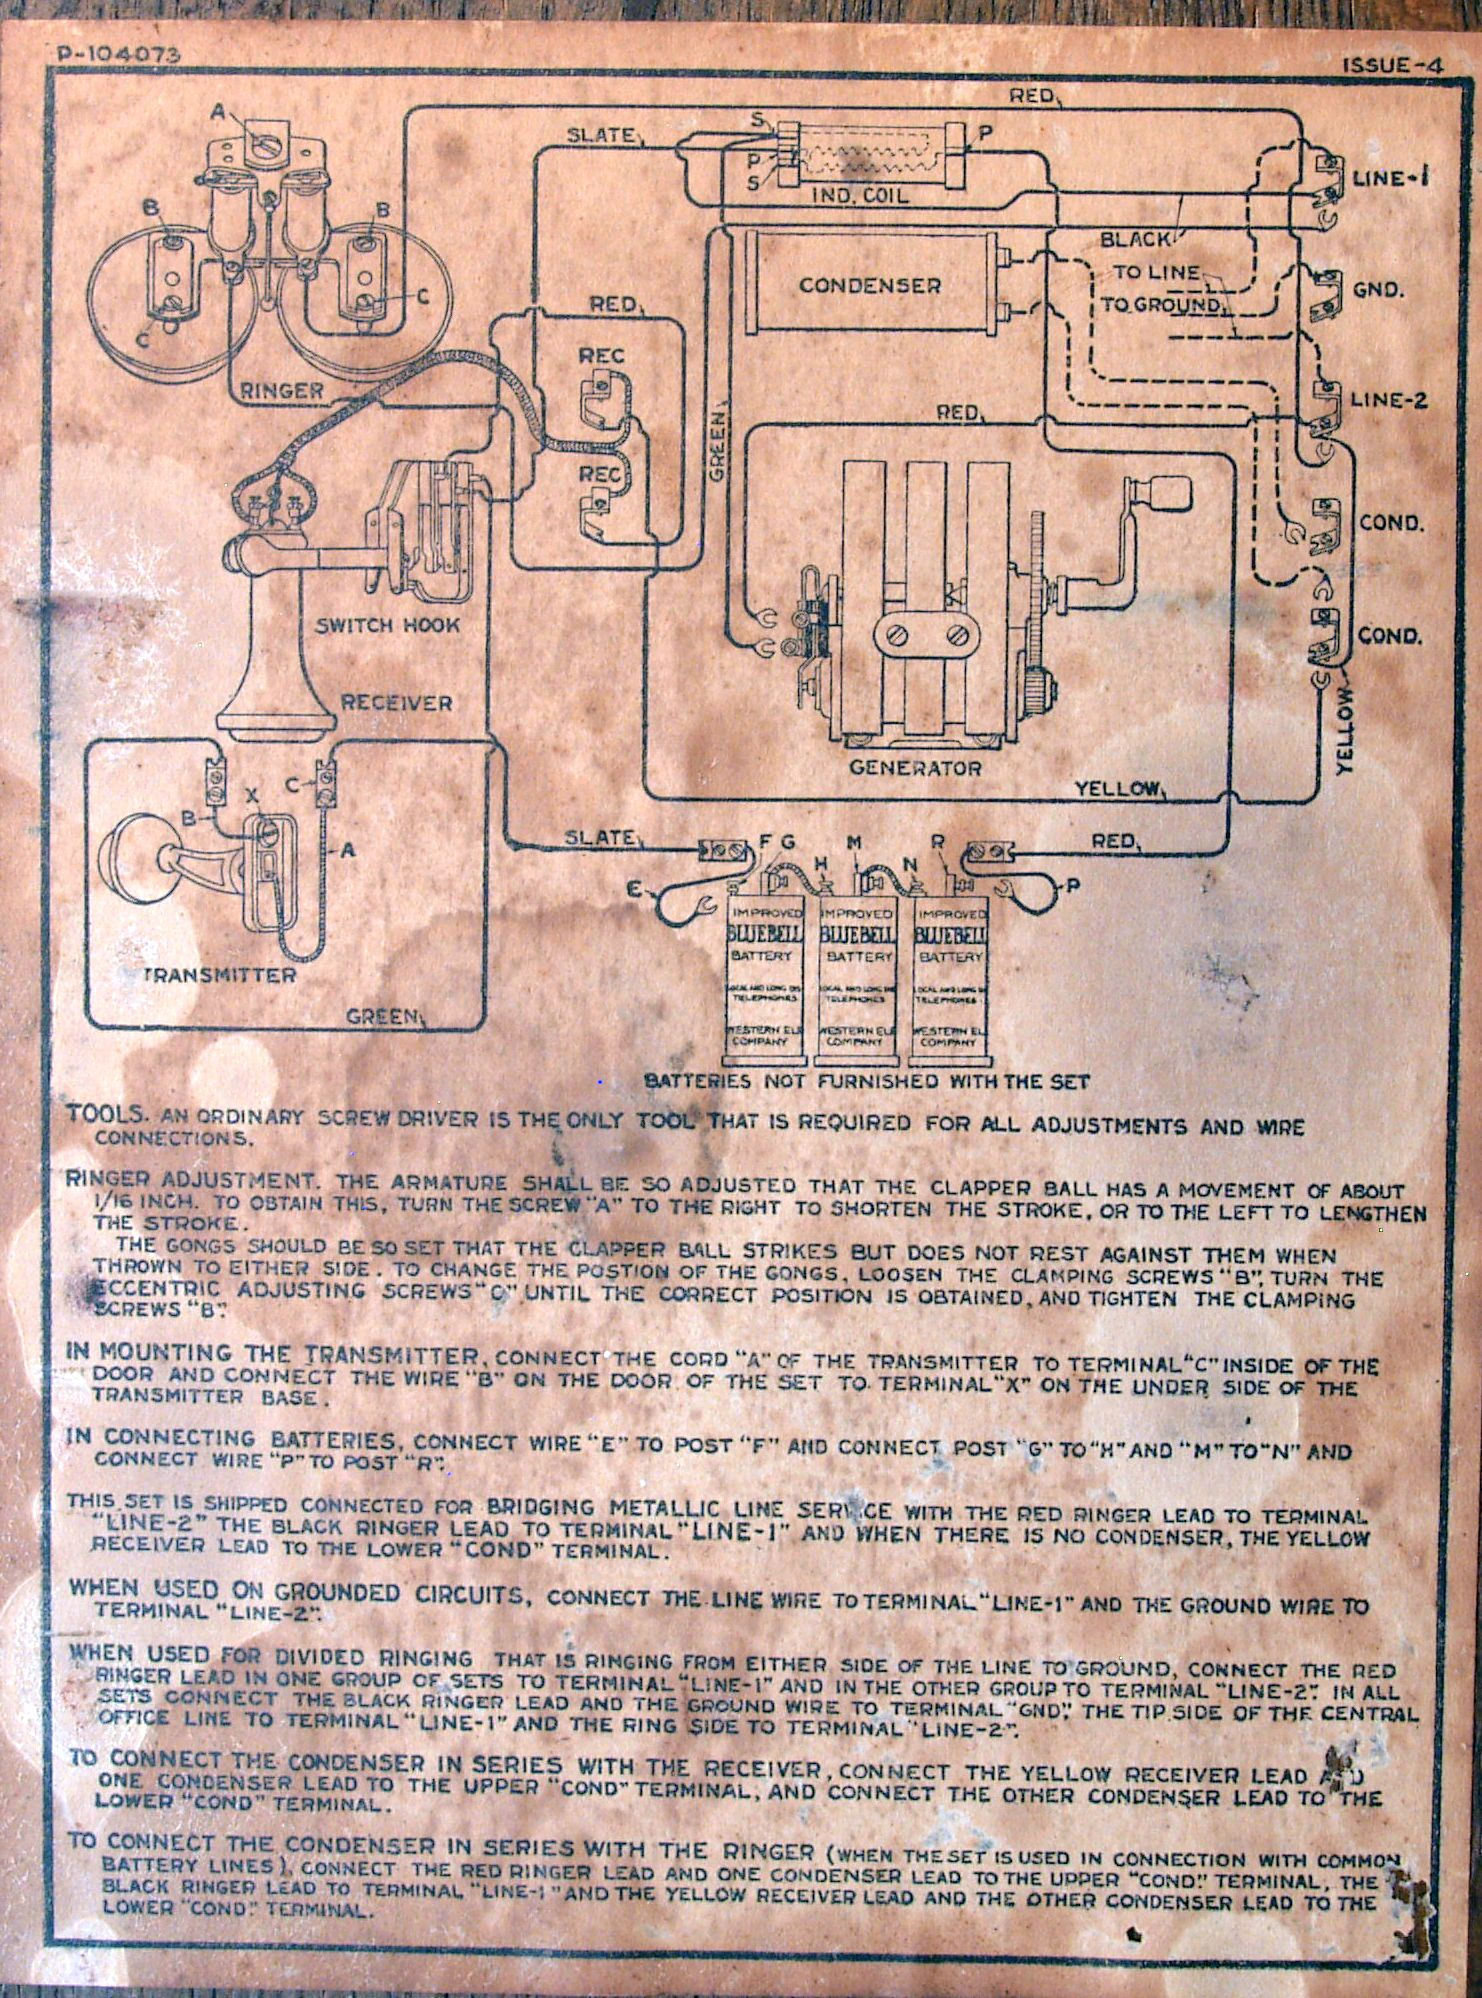 Antique Telephone Wiring Diagrams Old Telephone Wiring Diagrams ...